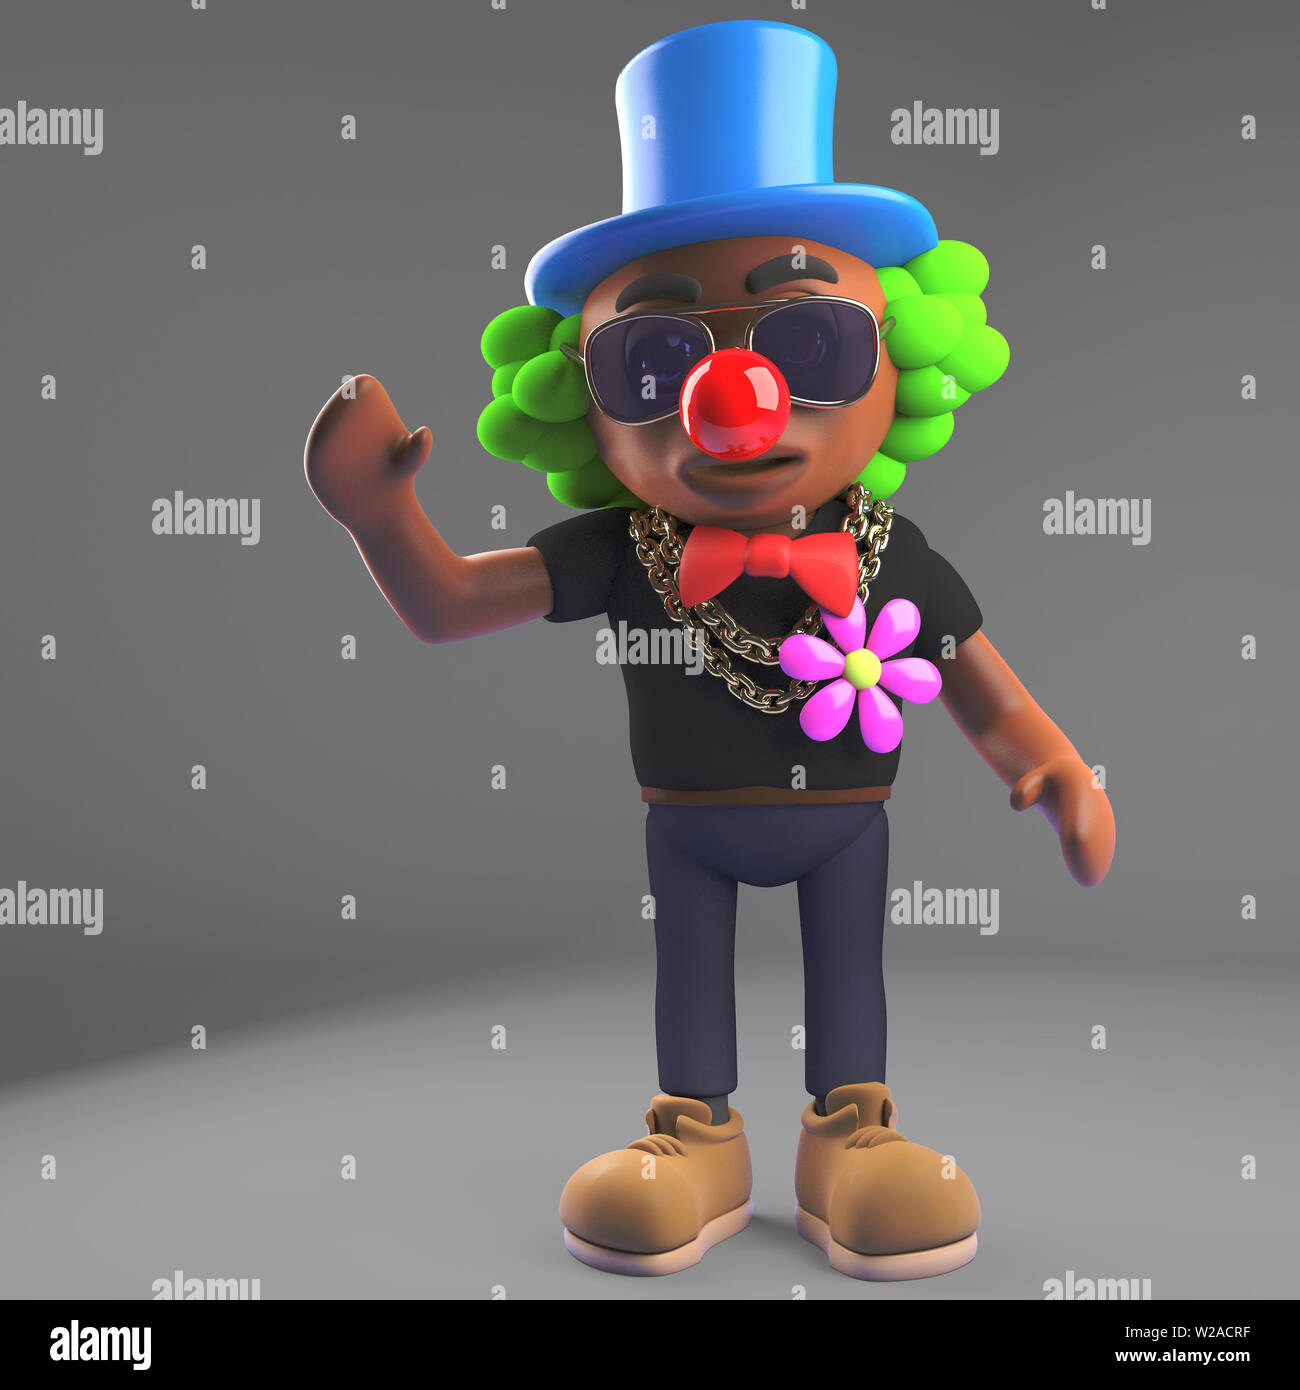 79ff90ac7aab45 Cartoon black hip hop rapper dressed as a clown with red nose, 3d  illustration render